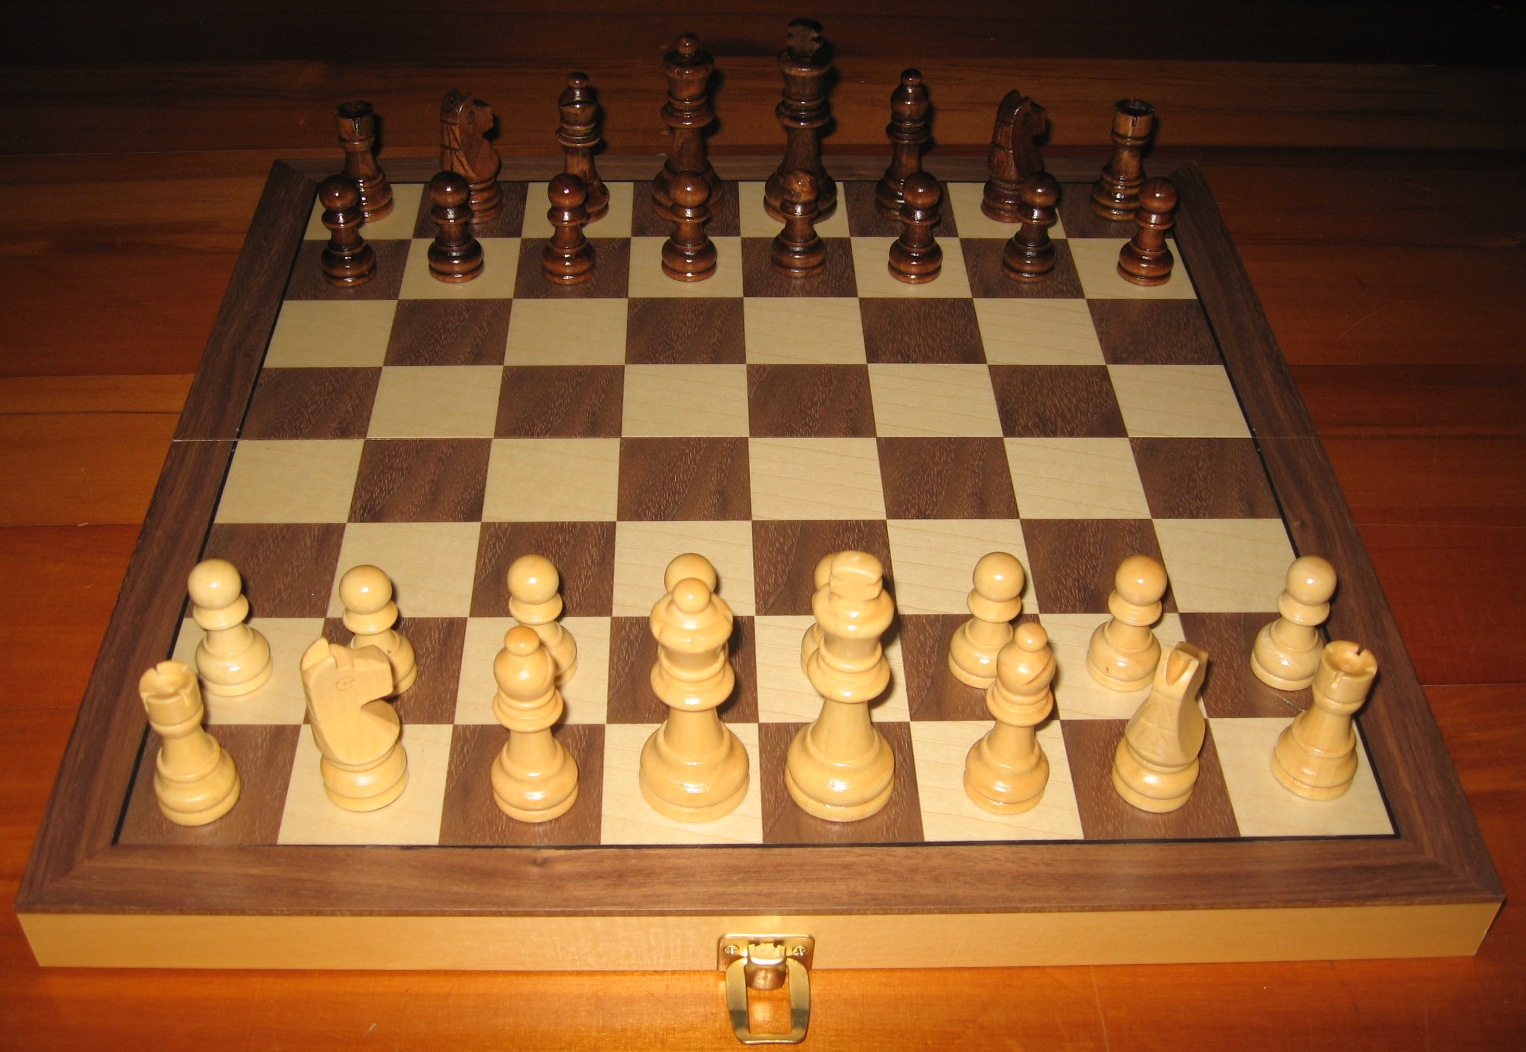 No 7162-15 Chess Set and Folding Board. 78mm King